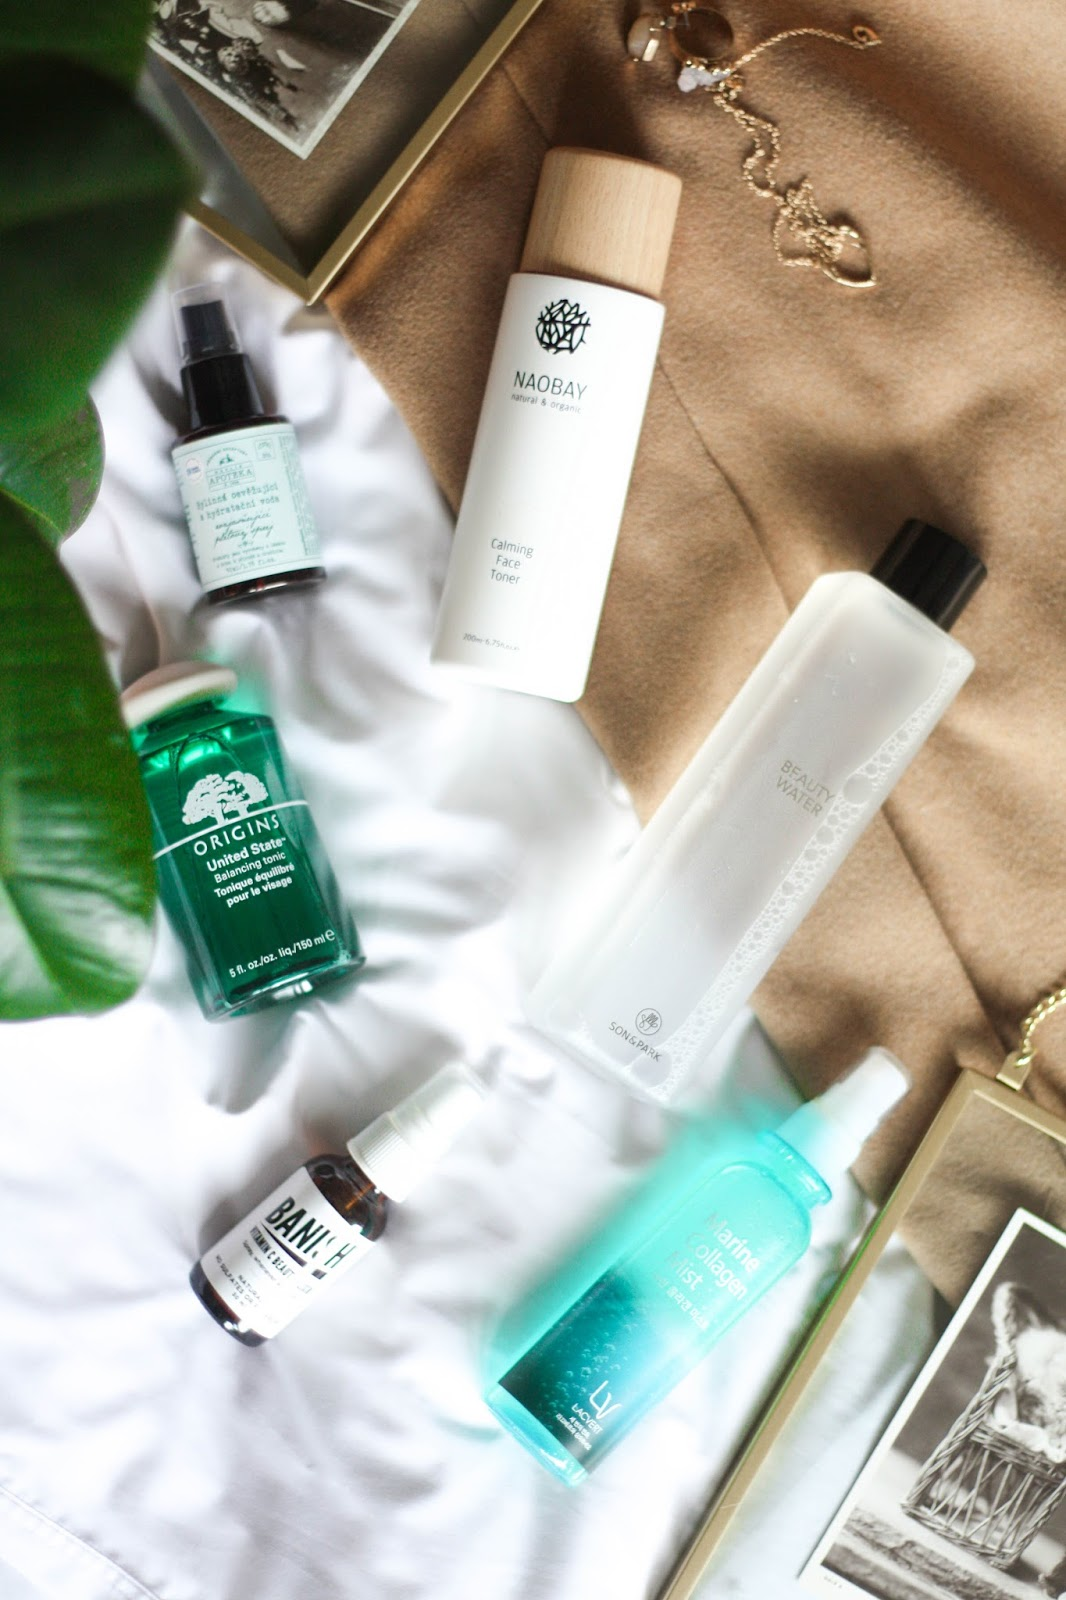 6 toners my skin absolutely adores right now